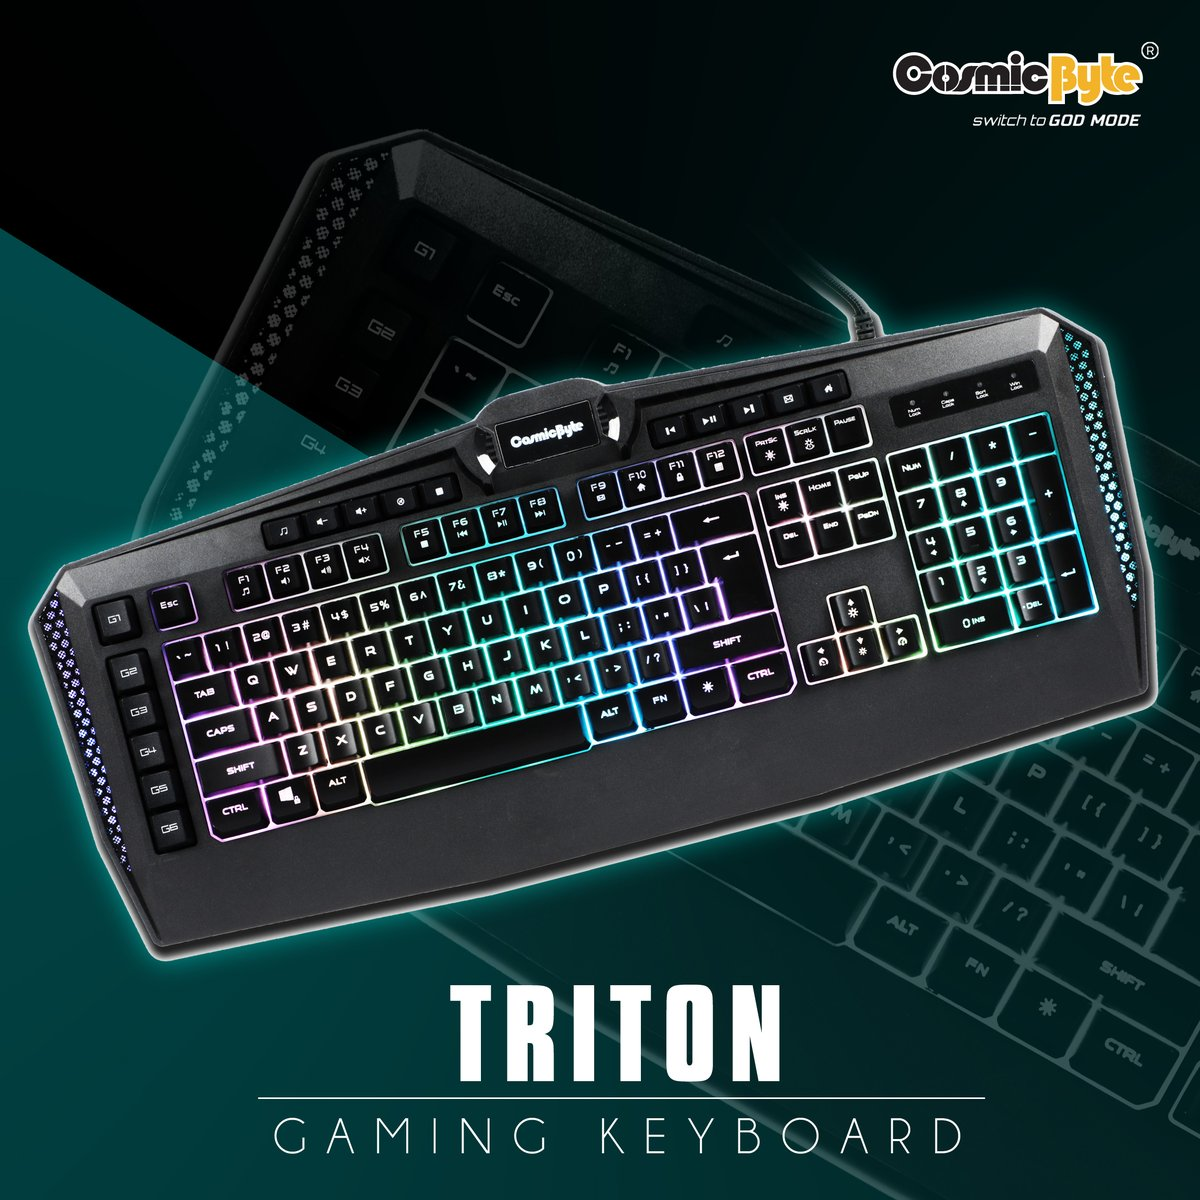 The purposefully crafted Triton per key RGB, 6 macro keys, software Gaming Keyboard from #CosmicByte comes with Full RGB with Software to control LED lights, Assign Macros to the 6 gaming keys  To Buy click on the link : https://bit.ly/3gnTH56   #Gaming #Gamingkeyboard pic.twitter.com/O1YsOjyVWK